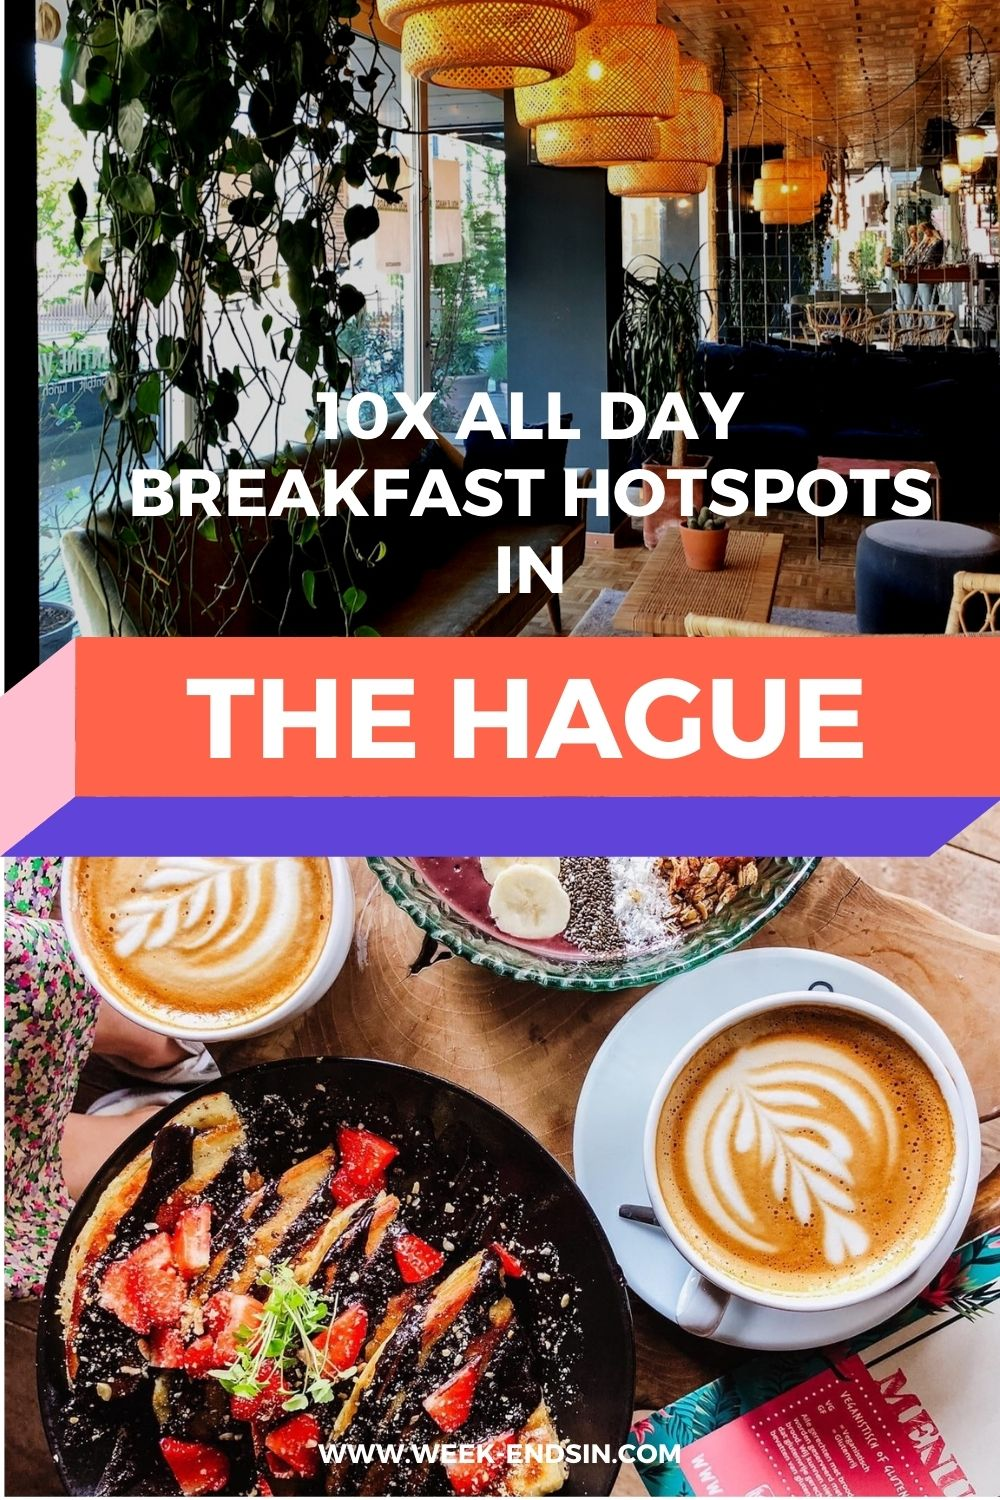 Is breakfast your favourite meal of the day as well? Then you'll love these all day breakfast hotspots in The Hague!